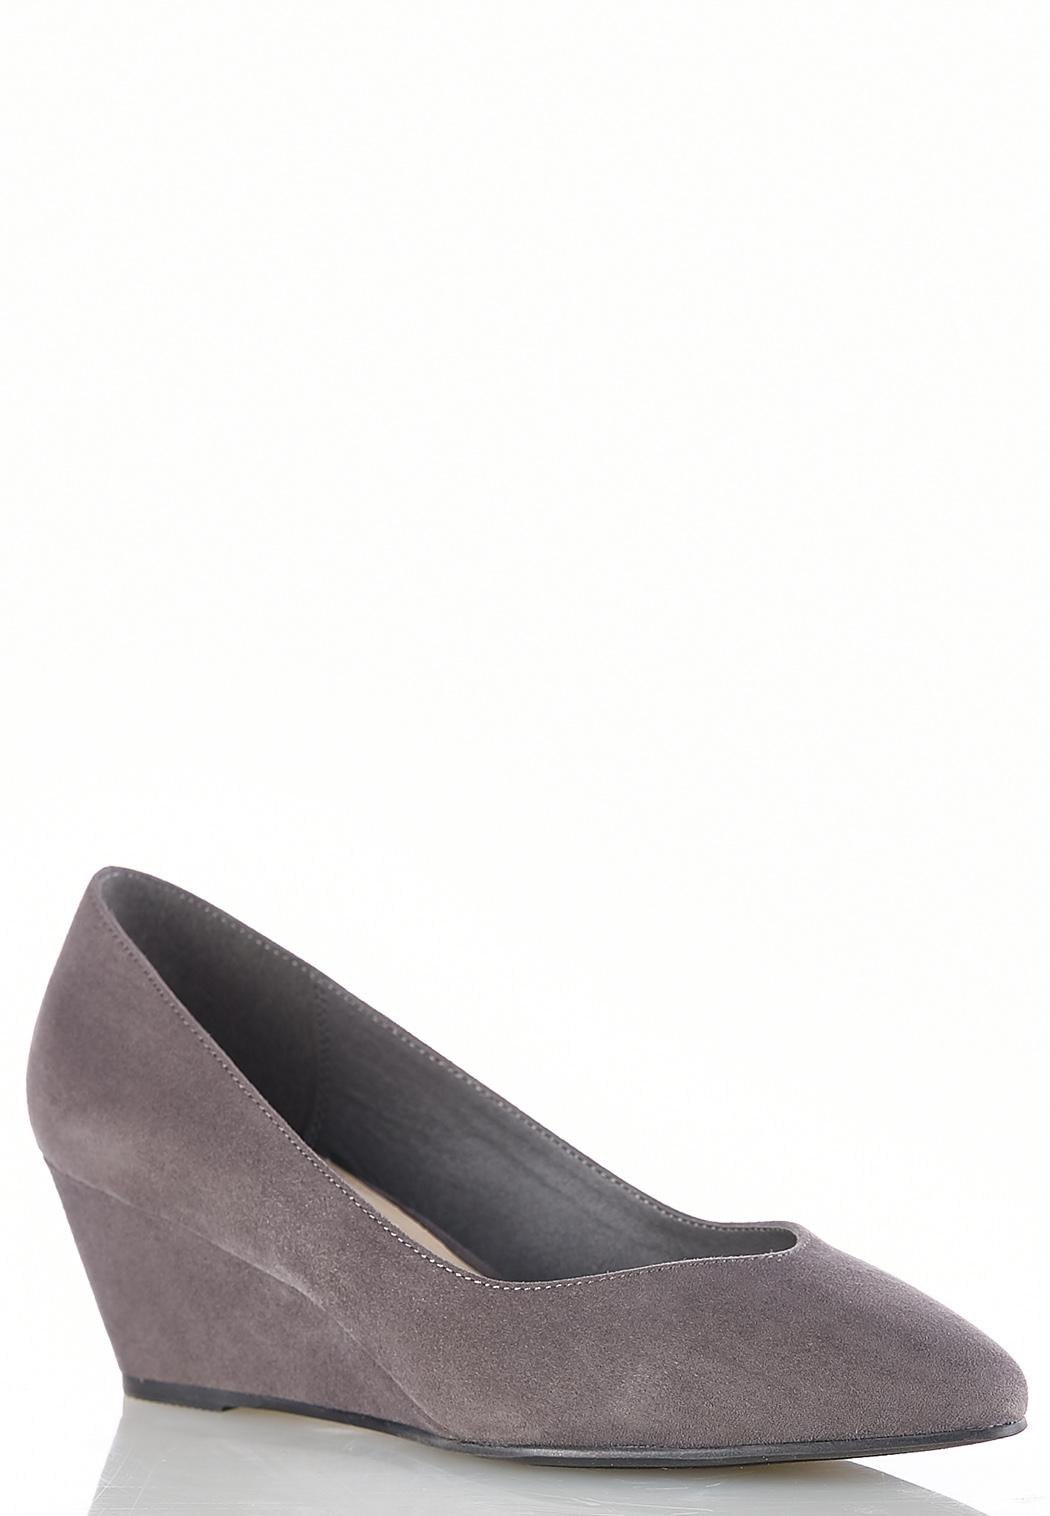 44db70d2c92 Faux Suede Wedge Pumps Wedges Cato Fashions